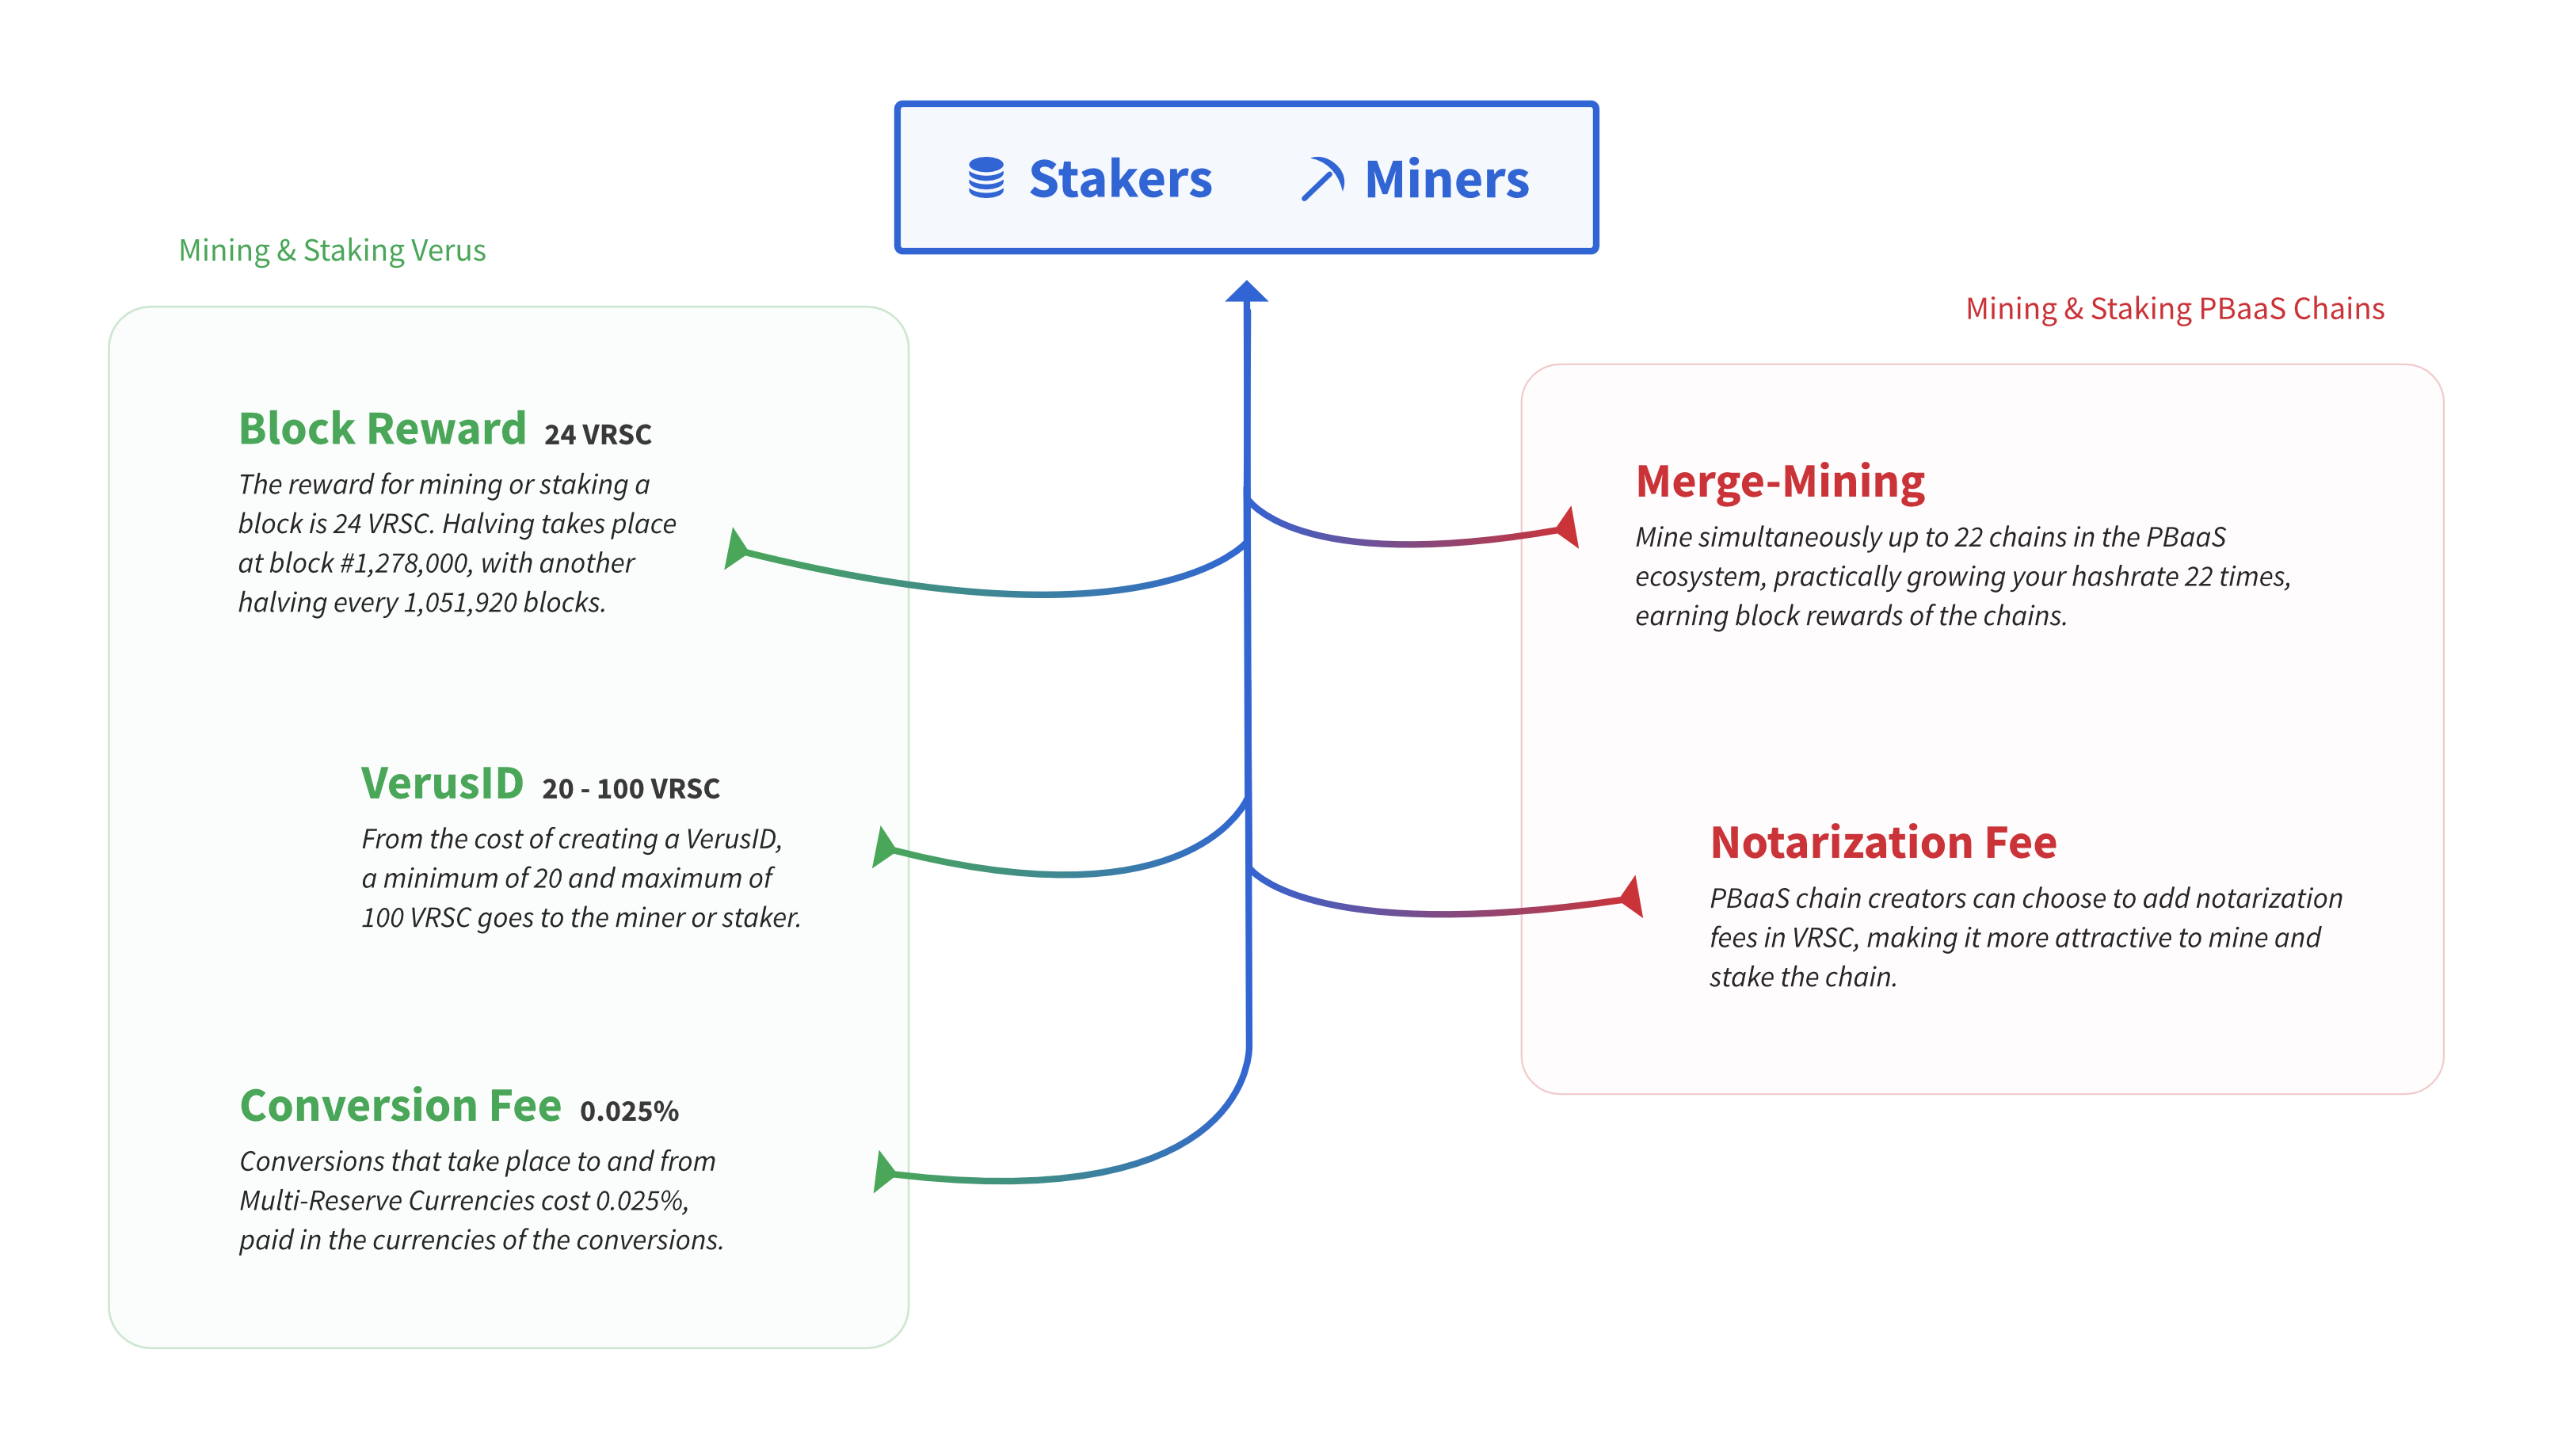 Infographic of the value for stakers and miners